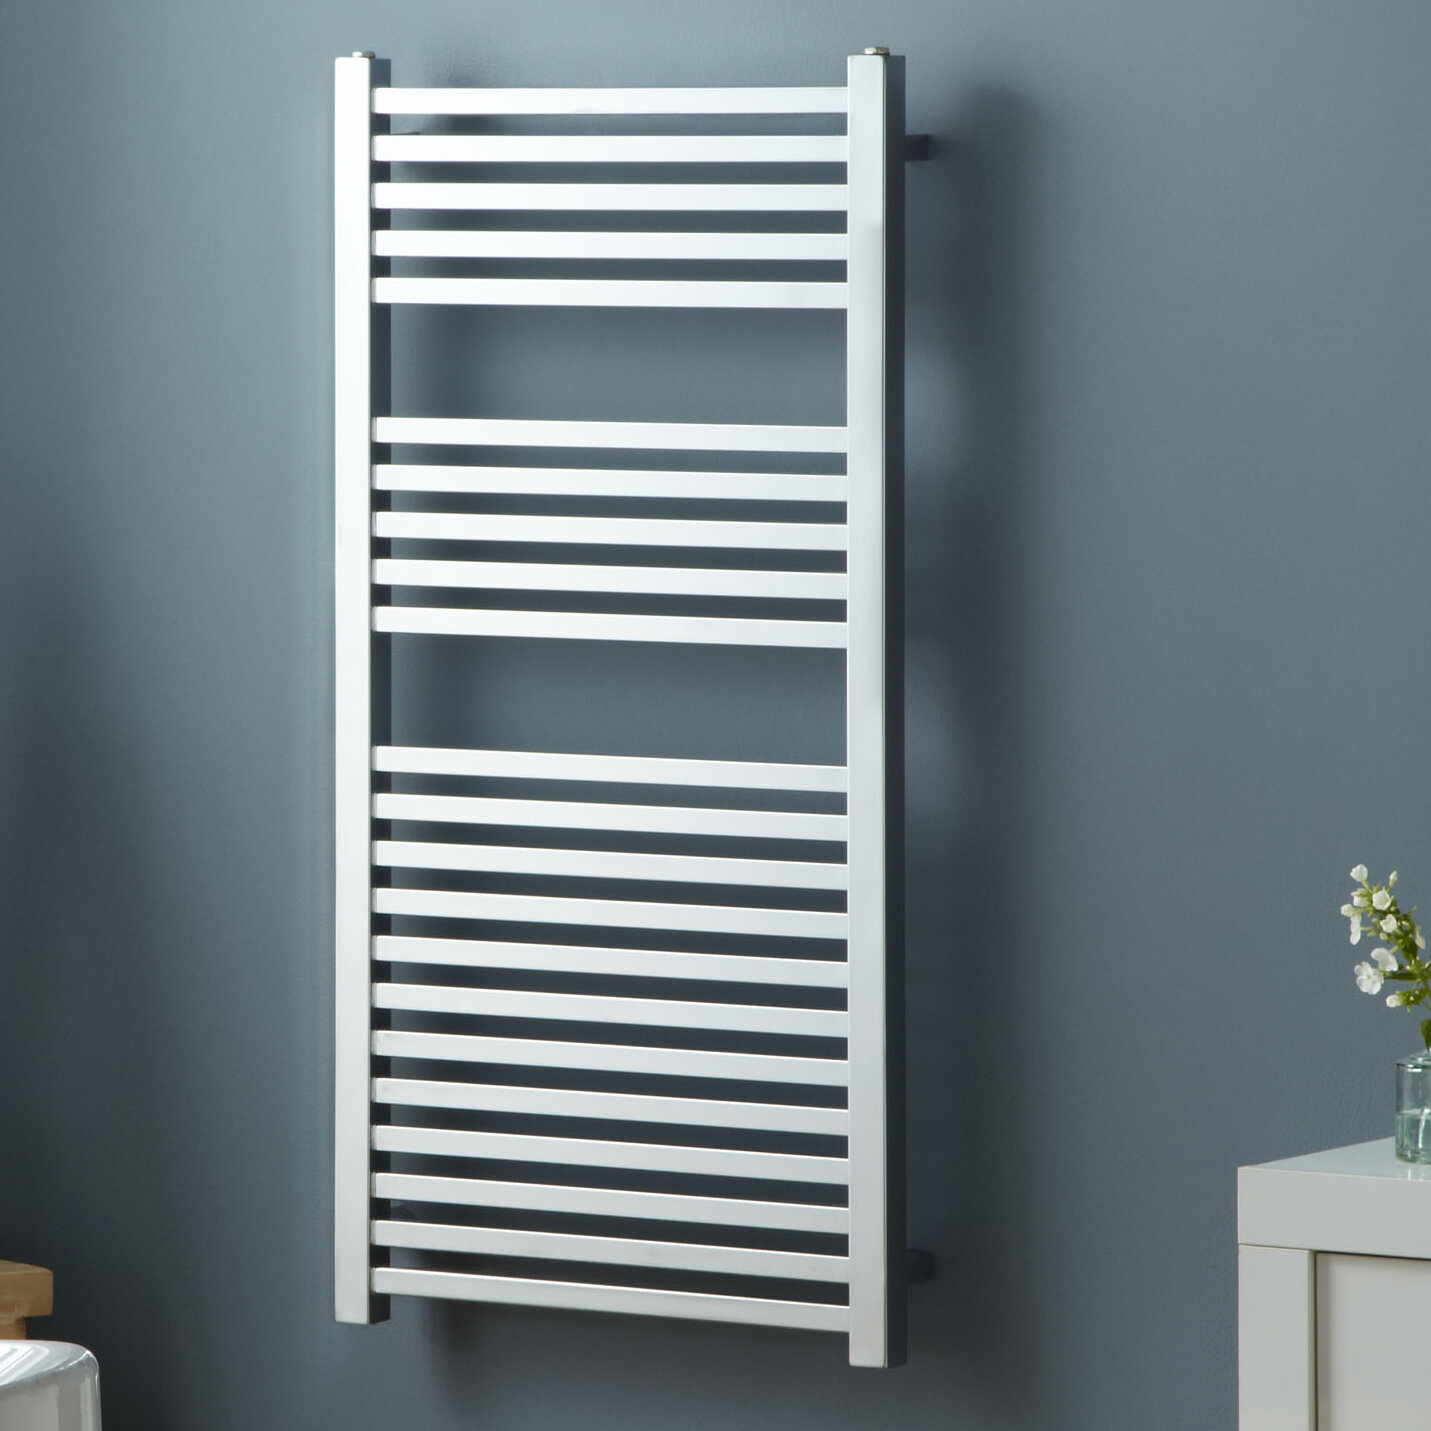 Square Bar Wall Mounted Heated Towel Rail